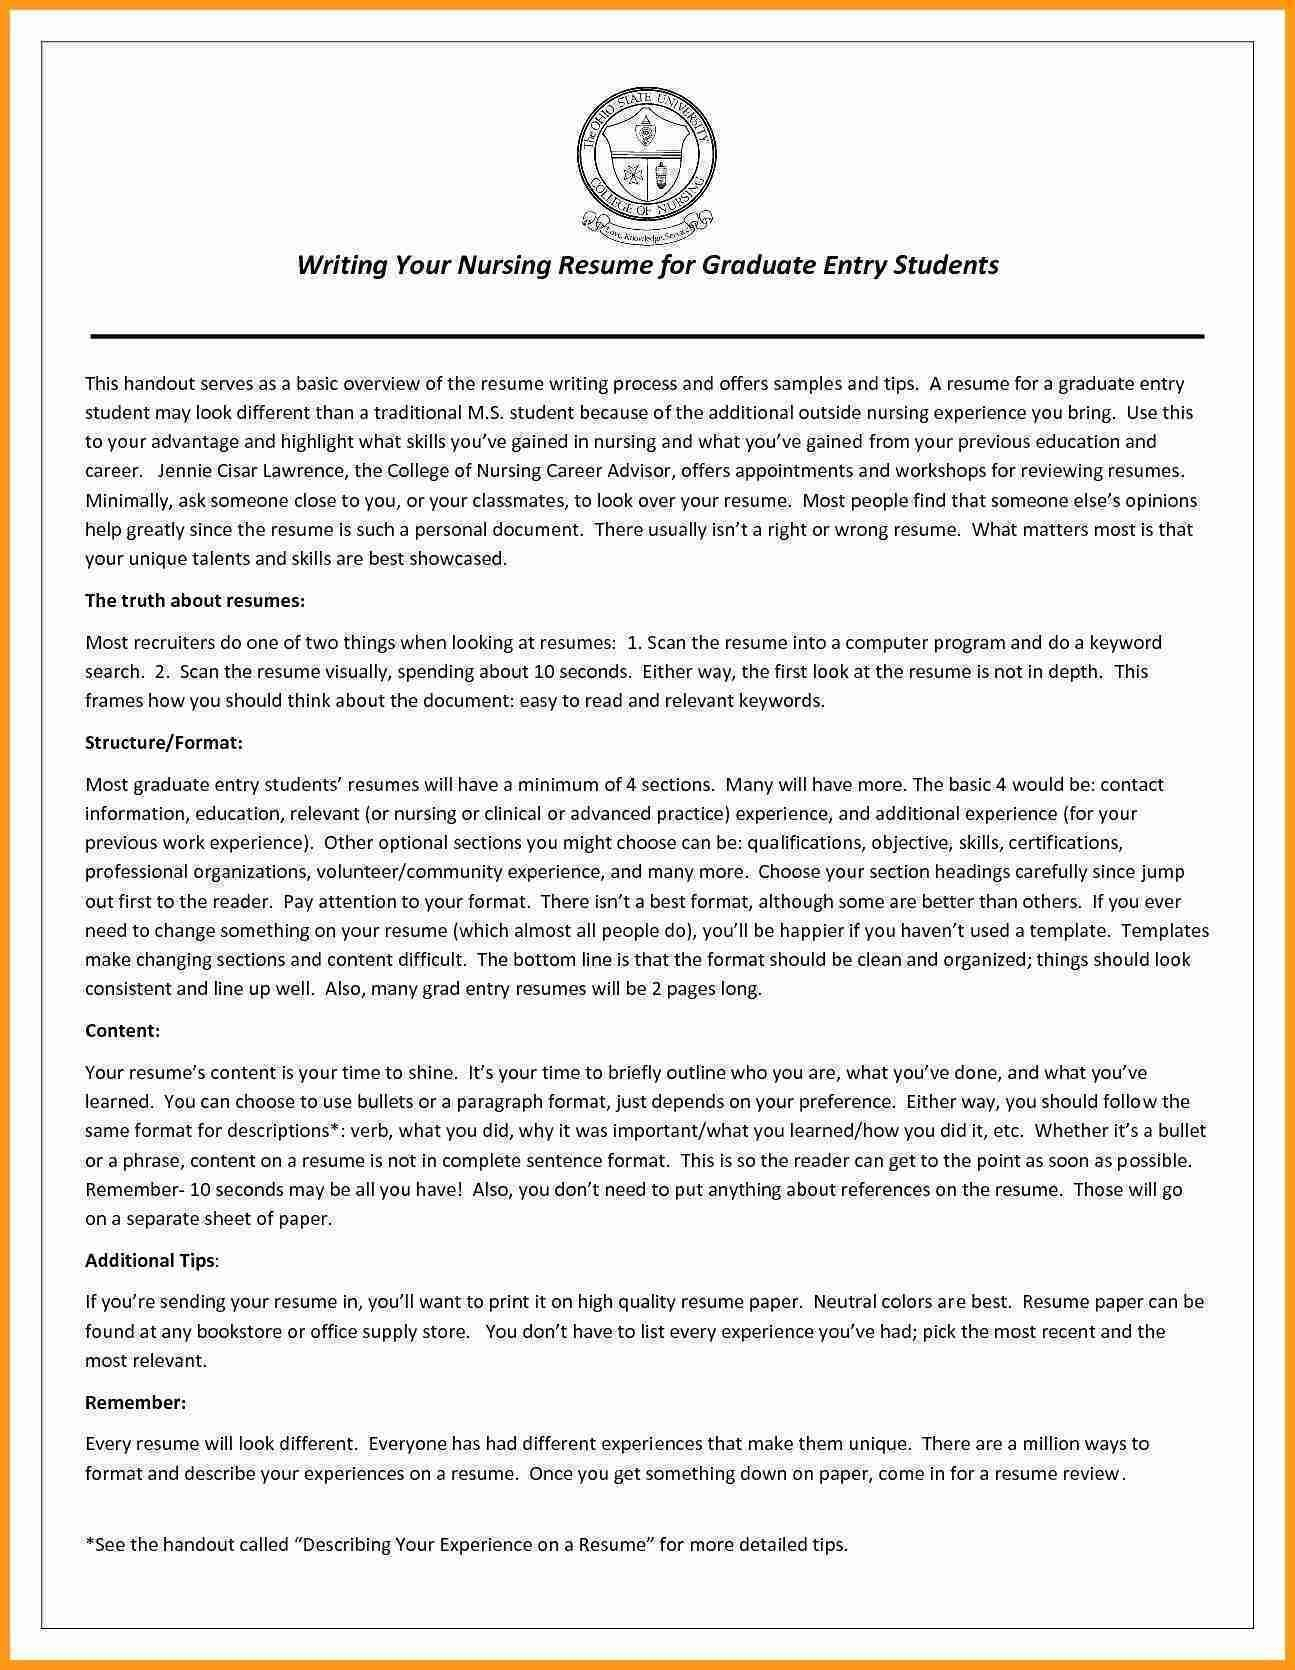 Scannable Resume Template – Carinsurancequotes66